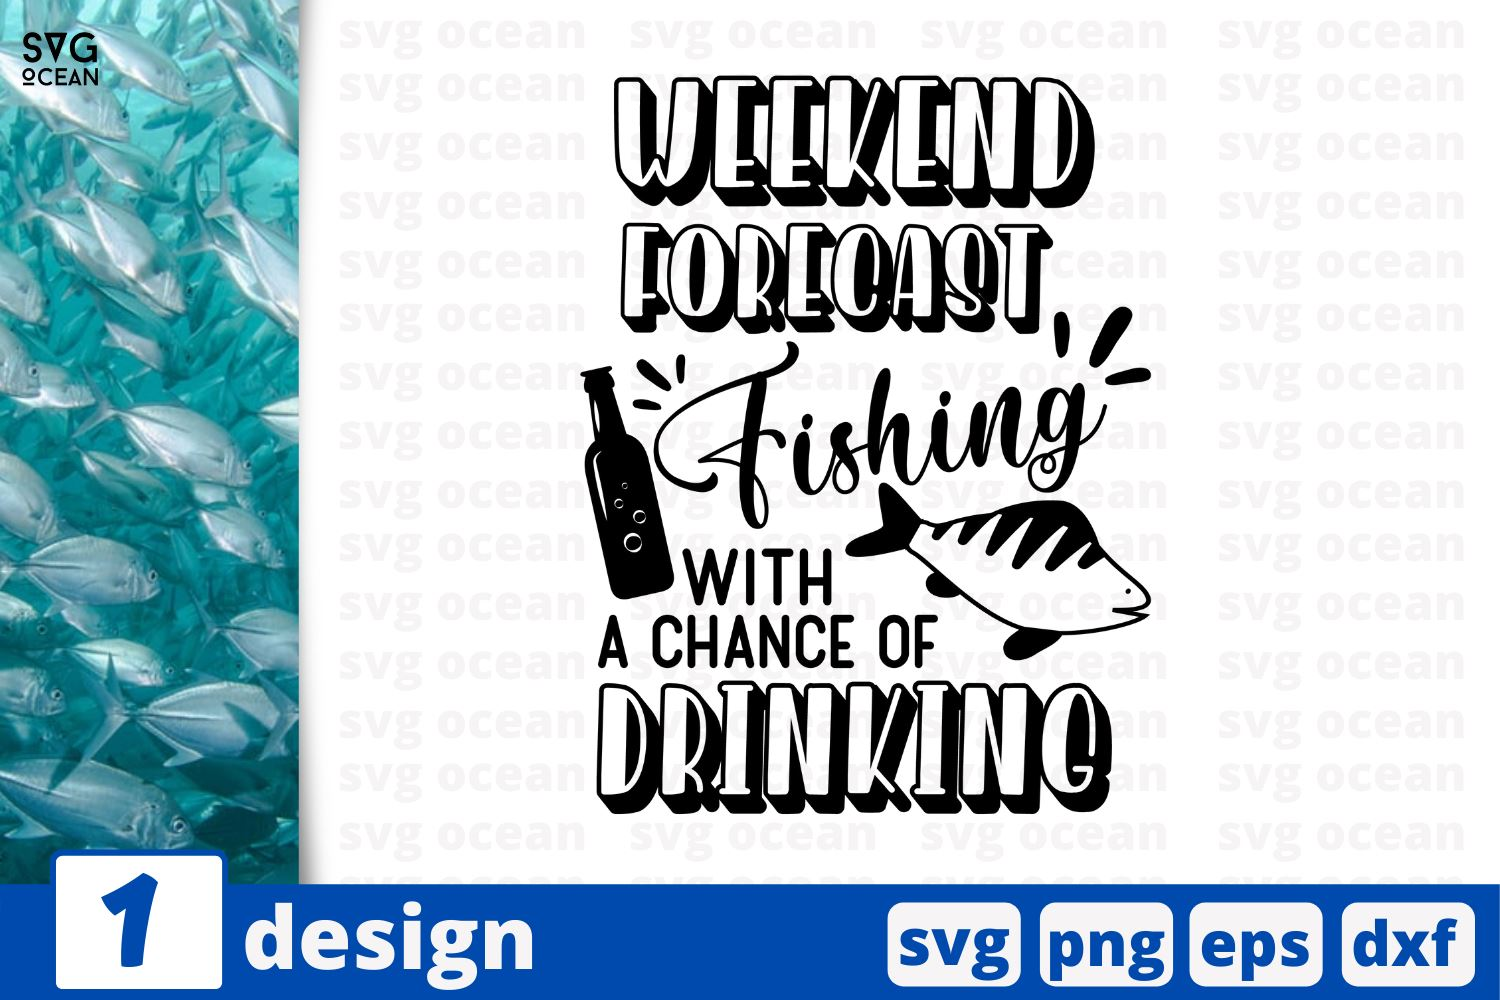 Download Weekend Forecast Fishing With A Chance Of Drinking Fishing Quotes Cricut Svg So Fontsy